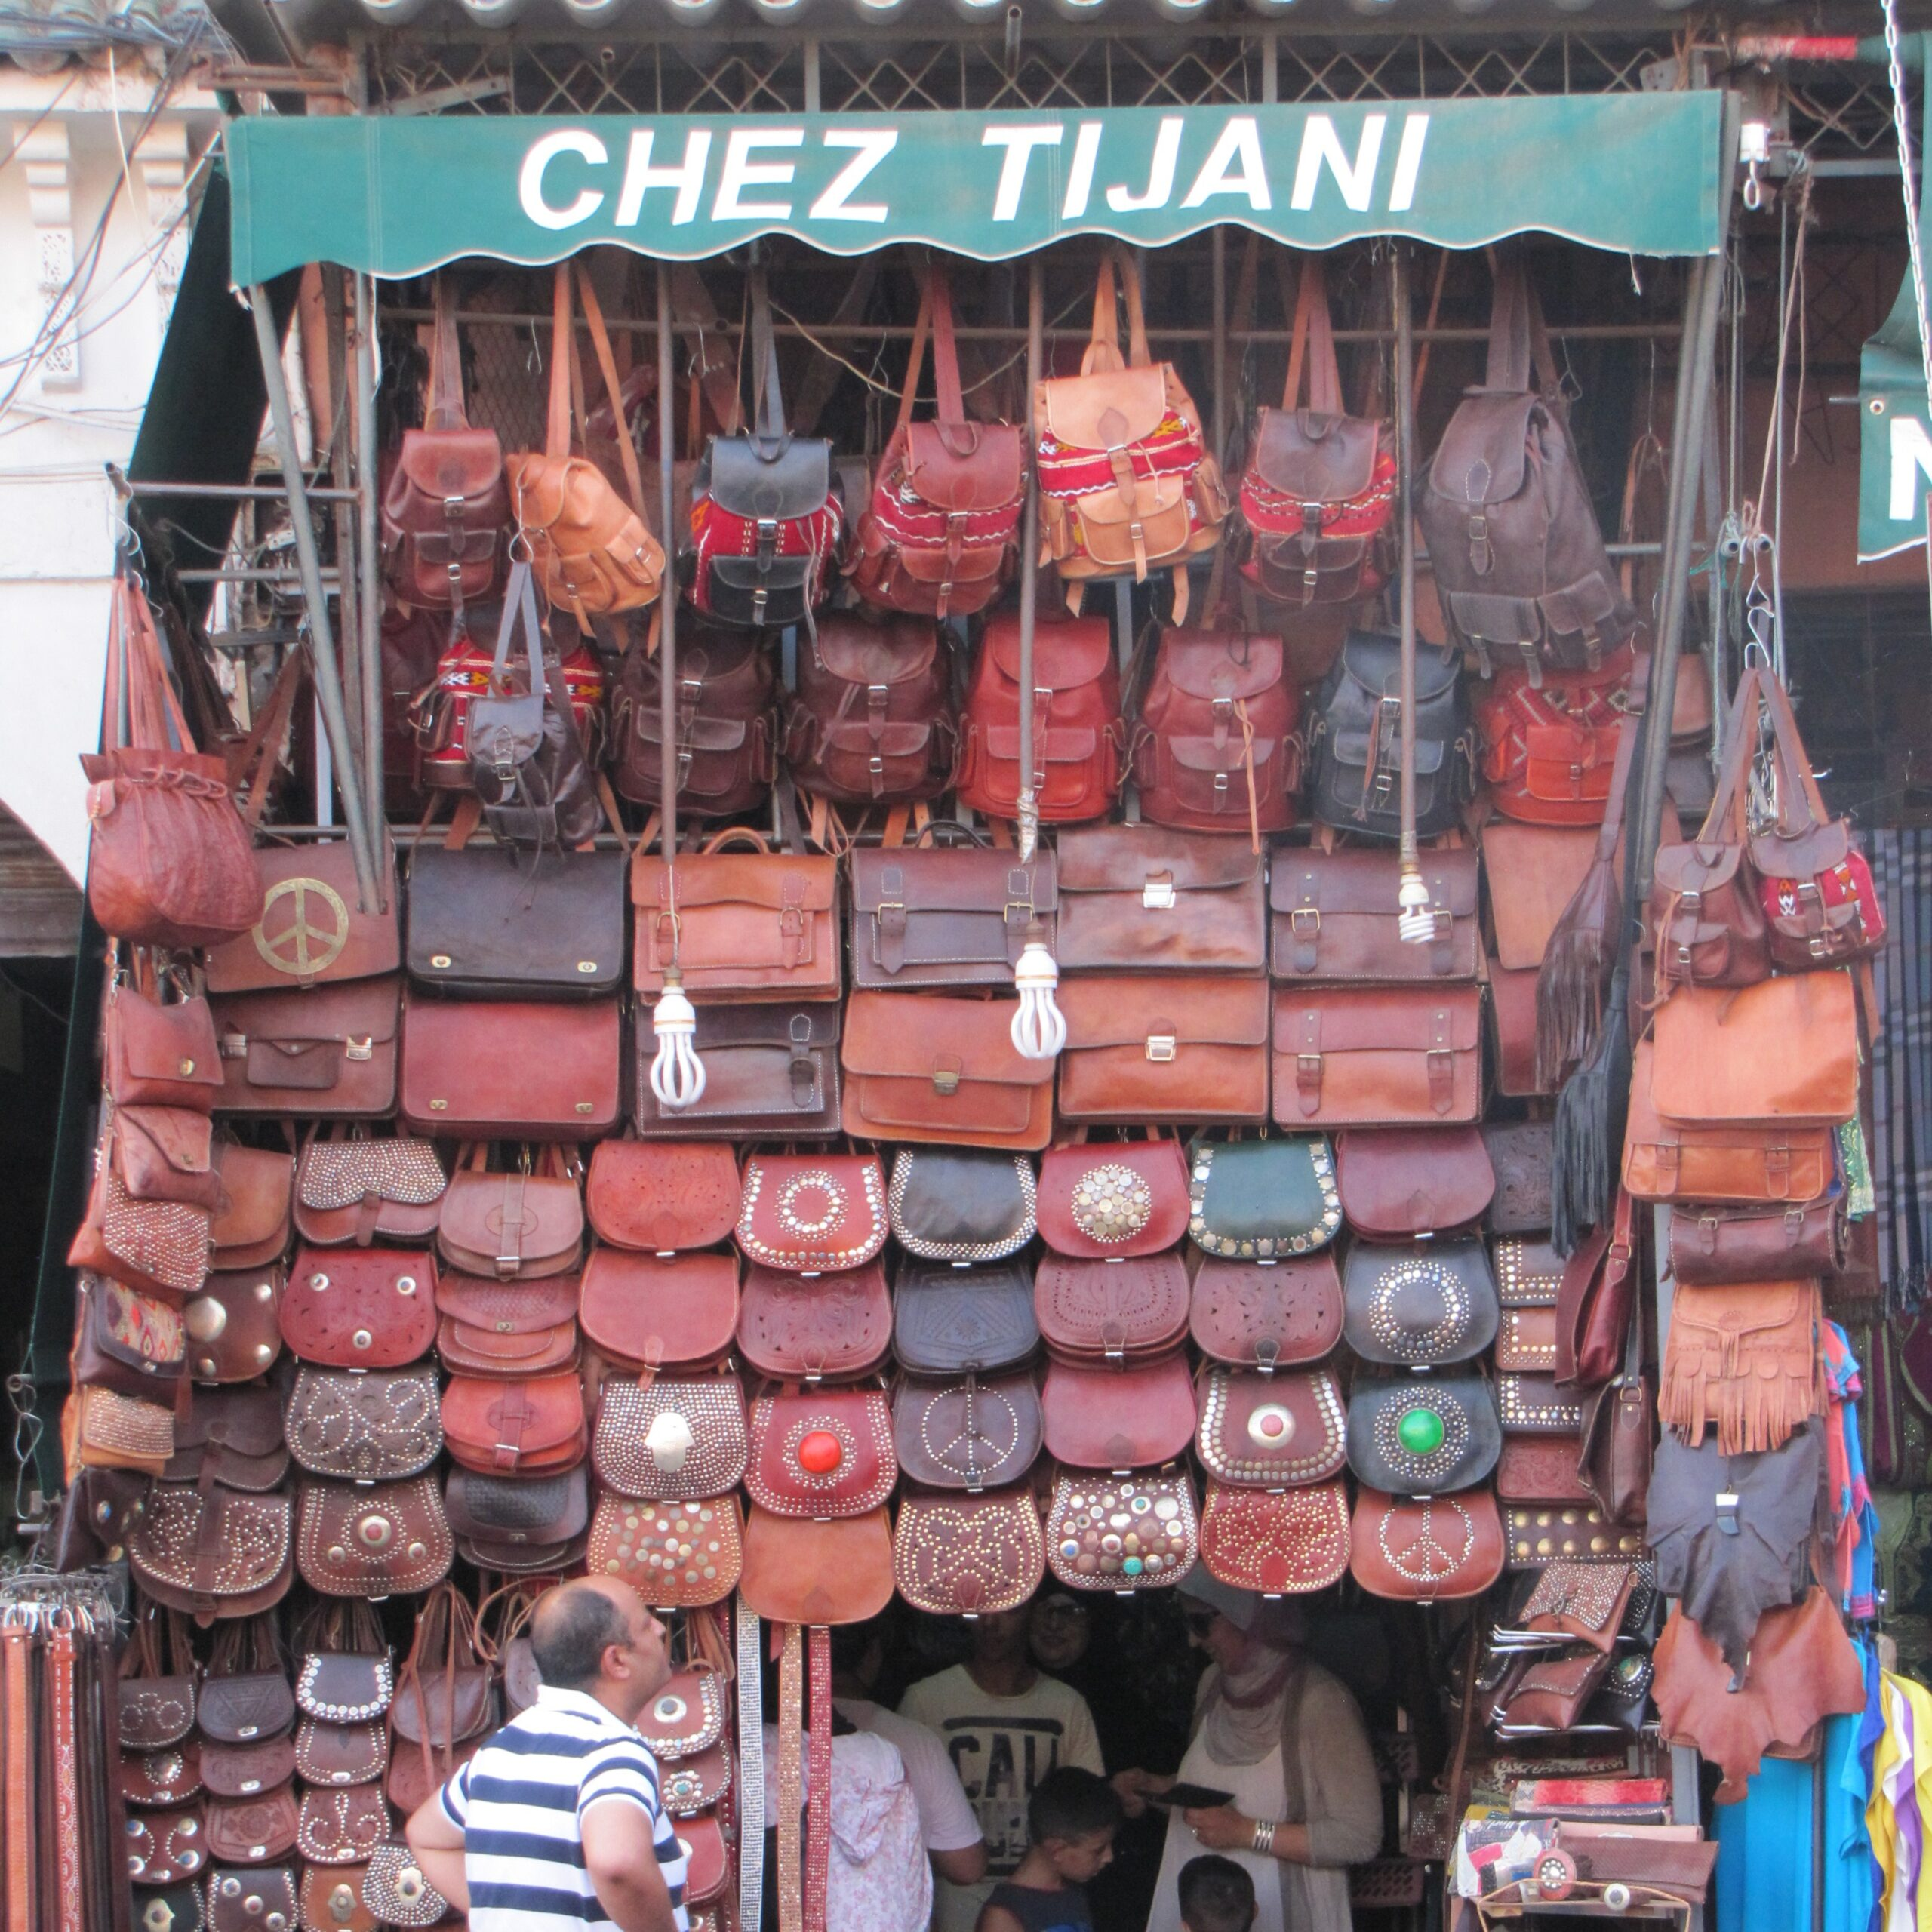 Ottomans, mirrors, leather accessories, jewelry and textiles from Morocco, as well as Nepal, Turkey, Thailand and Tunisia.